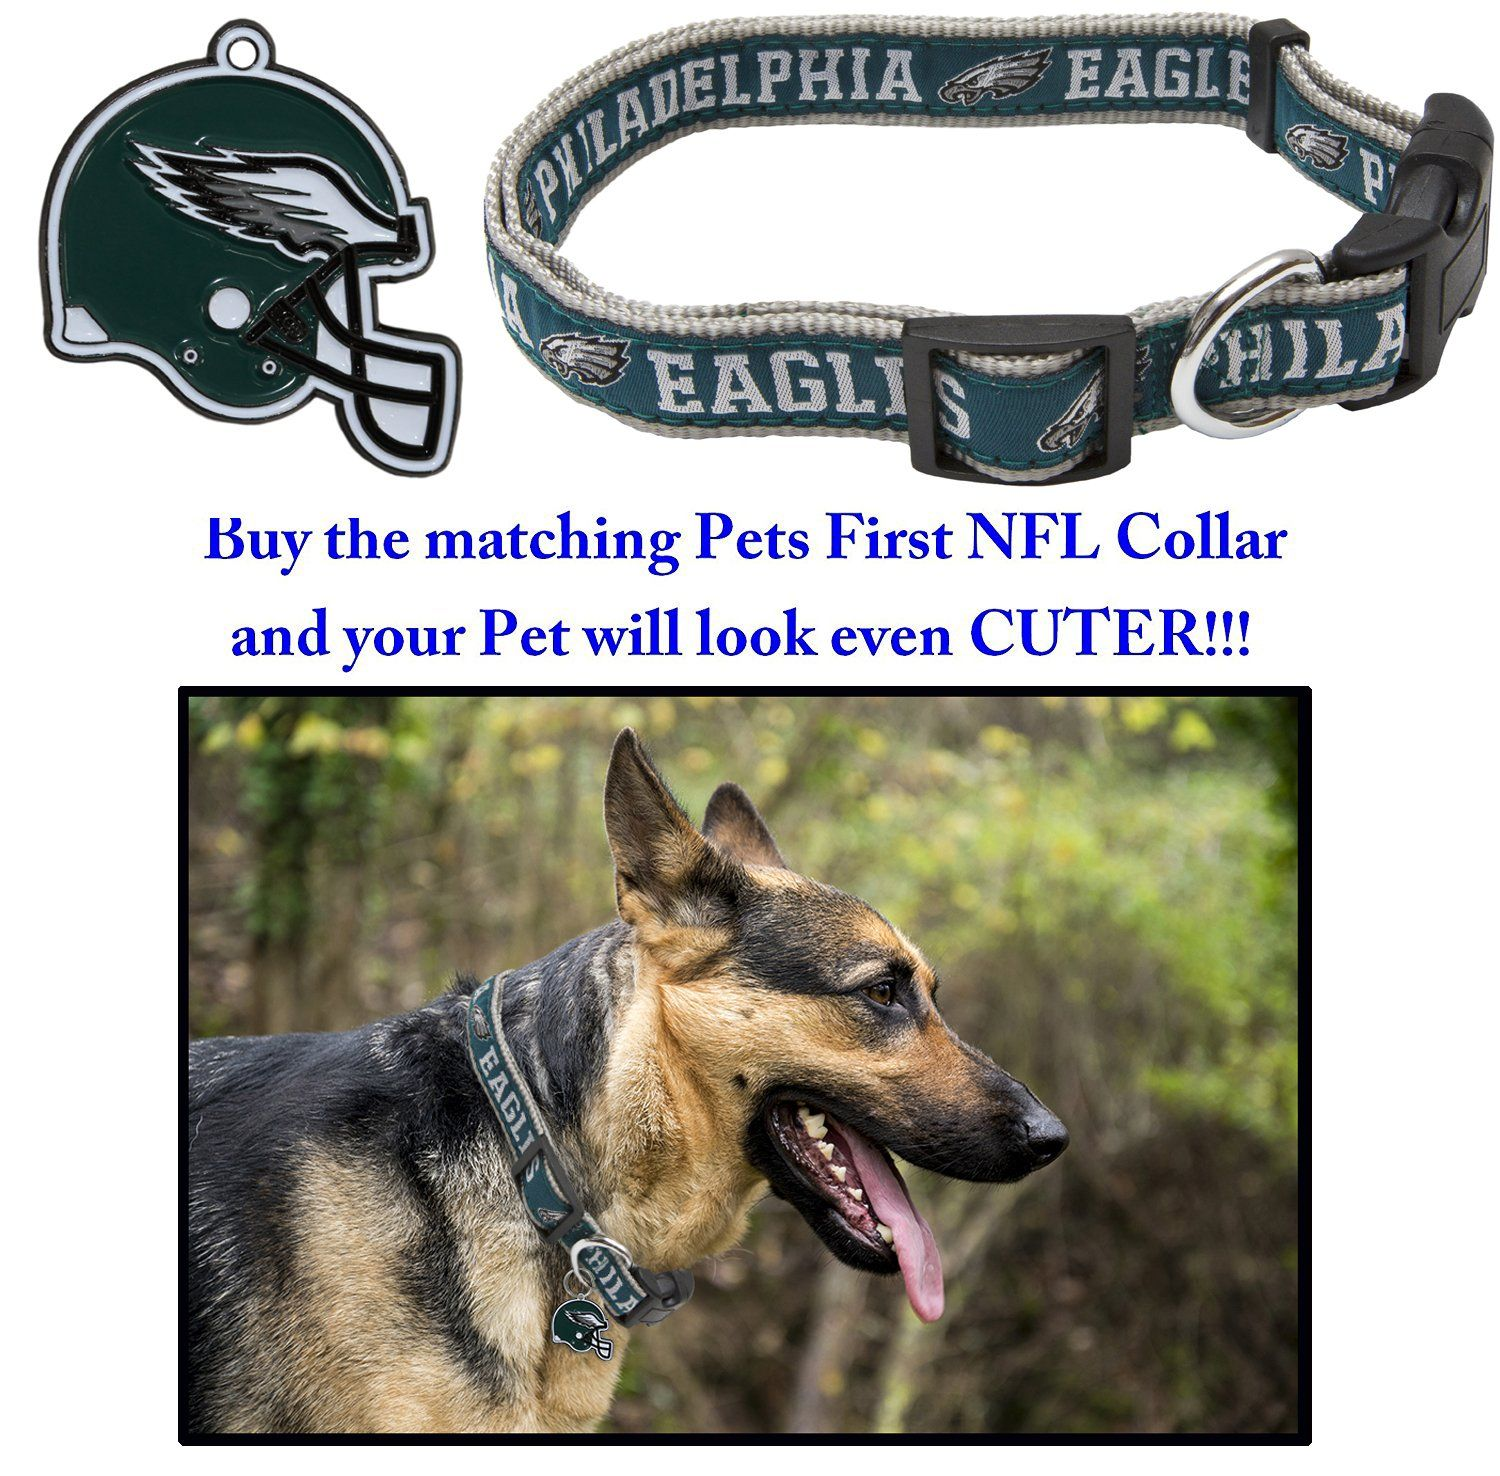 competitive price d3fe3 1b8e9 NFL DOG TAG PHILADELPHIA EAGLES Smart Pet TRACKING Tag. Best ...